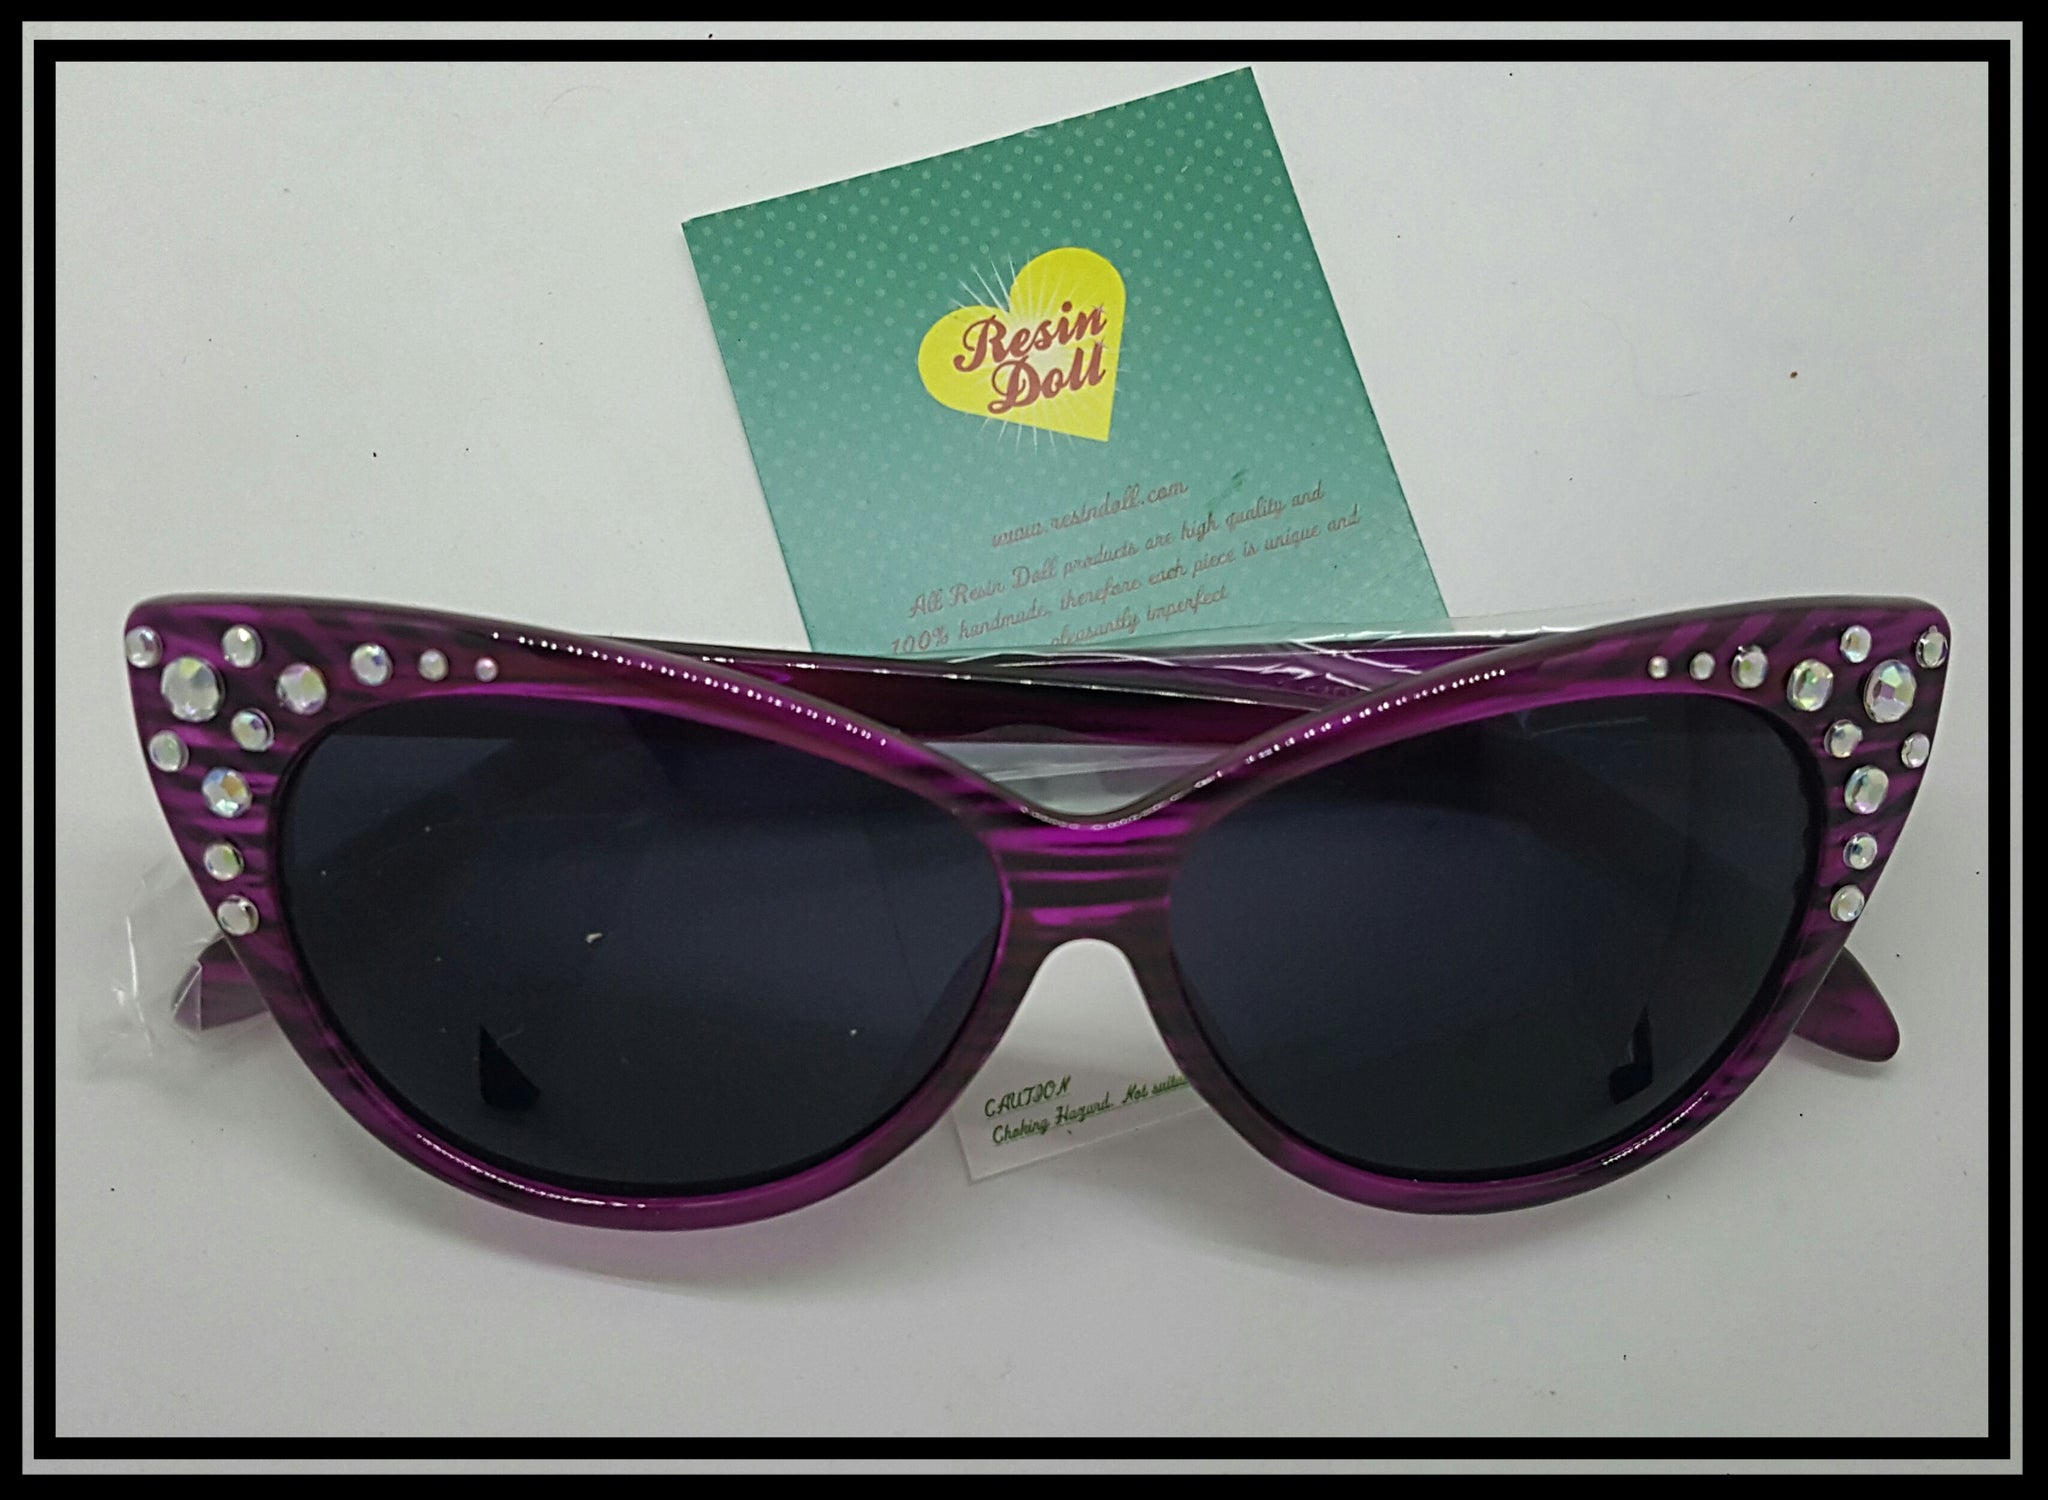 Pink/purple frame corner bling sunglasses